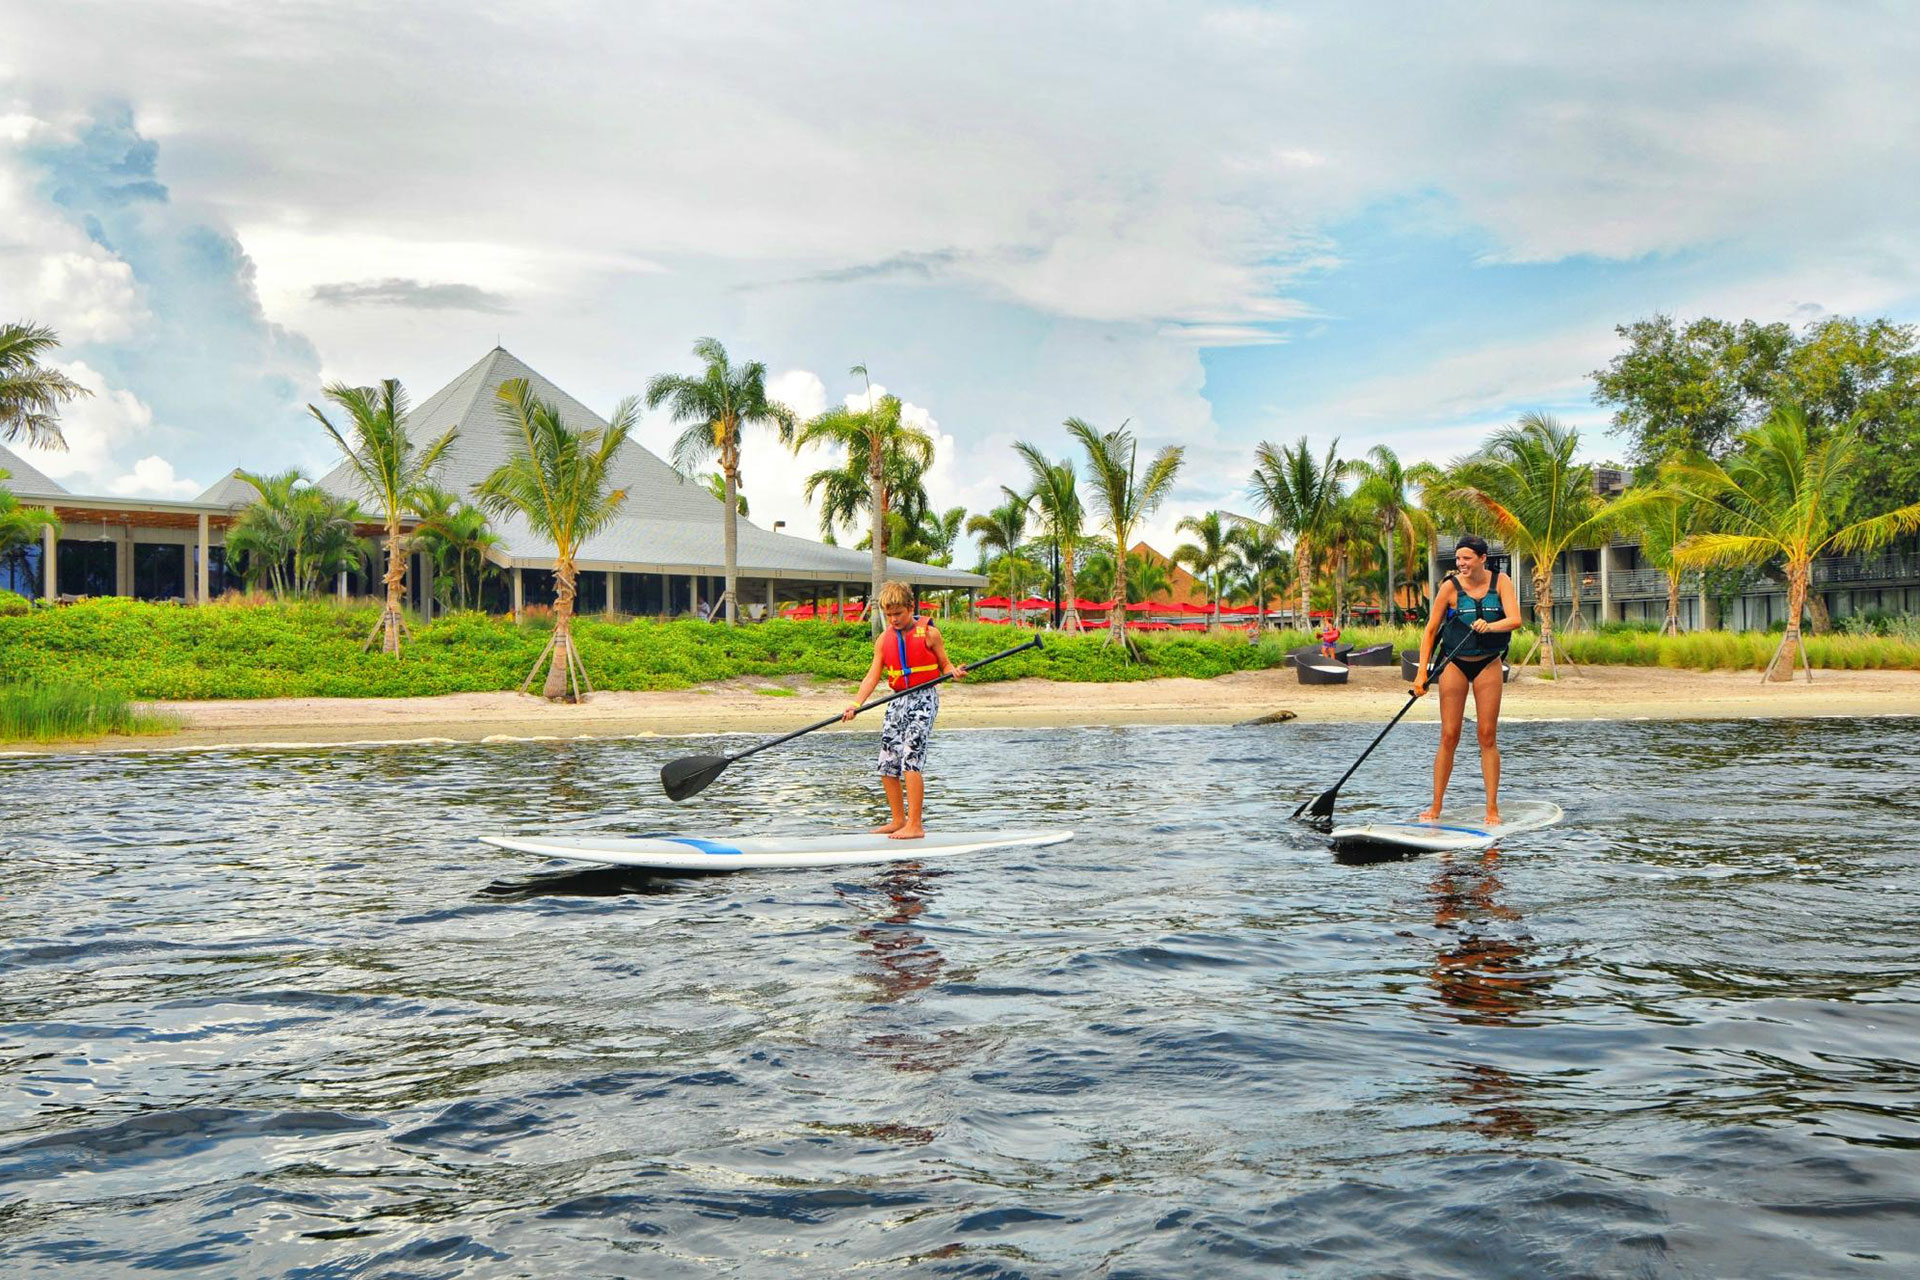 Paddleboarding at Club Med Sandpiper Bay in Florida in Port Saint Lucie